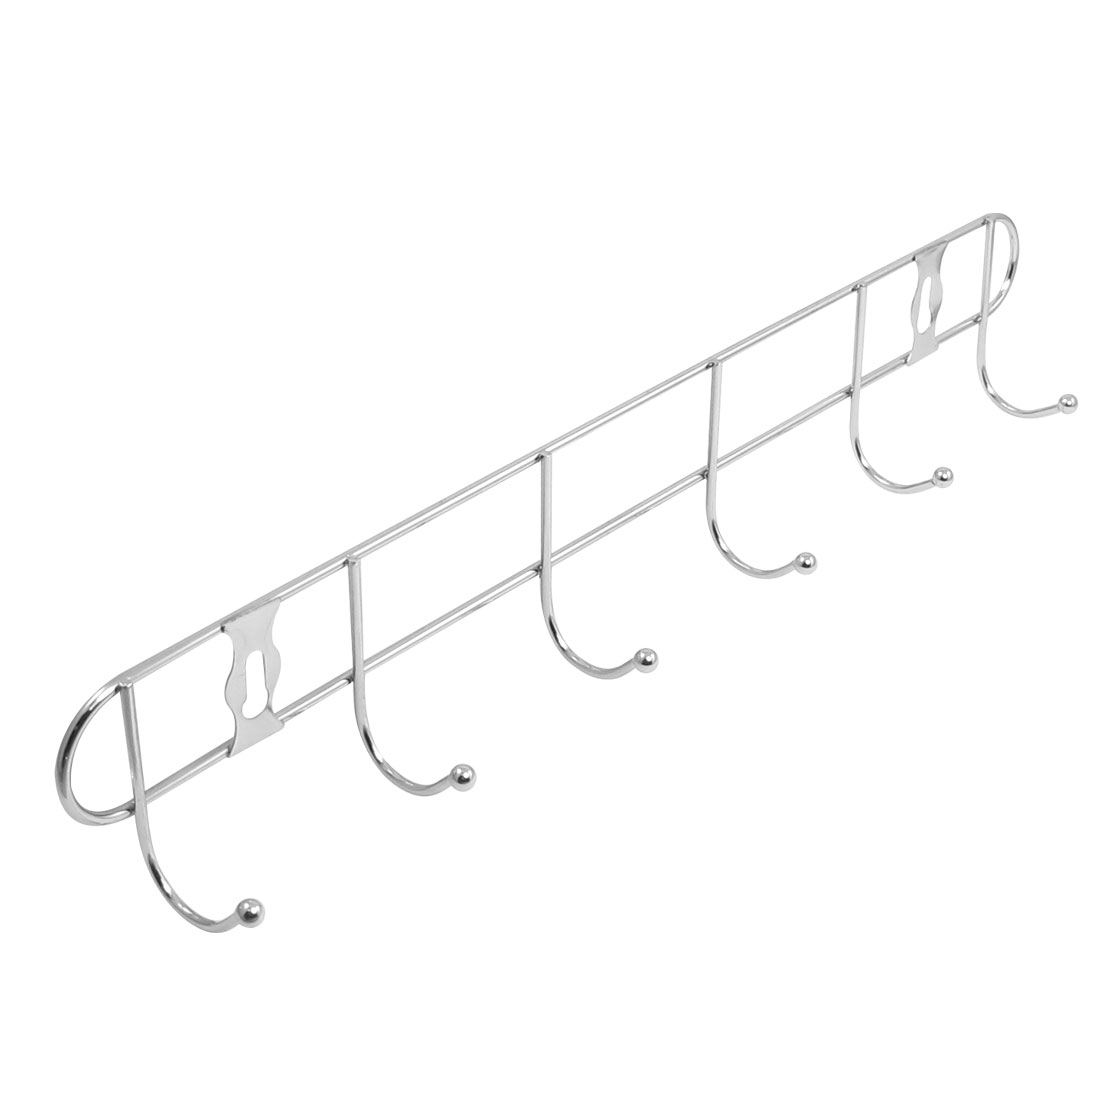 Bedroom Bathroom Clothes Towels 6 Hooks Wall Hanger Silver Tone